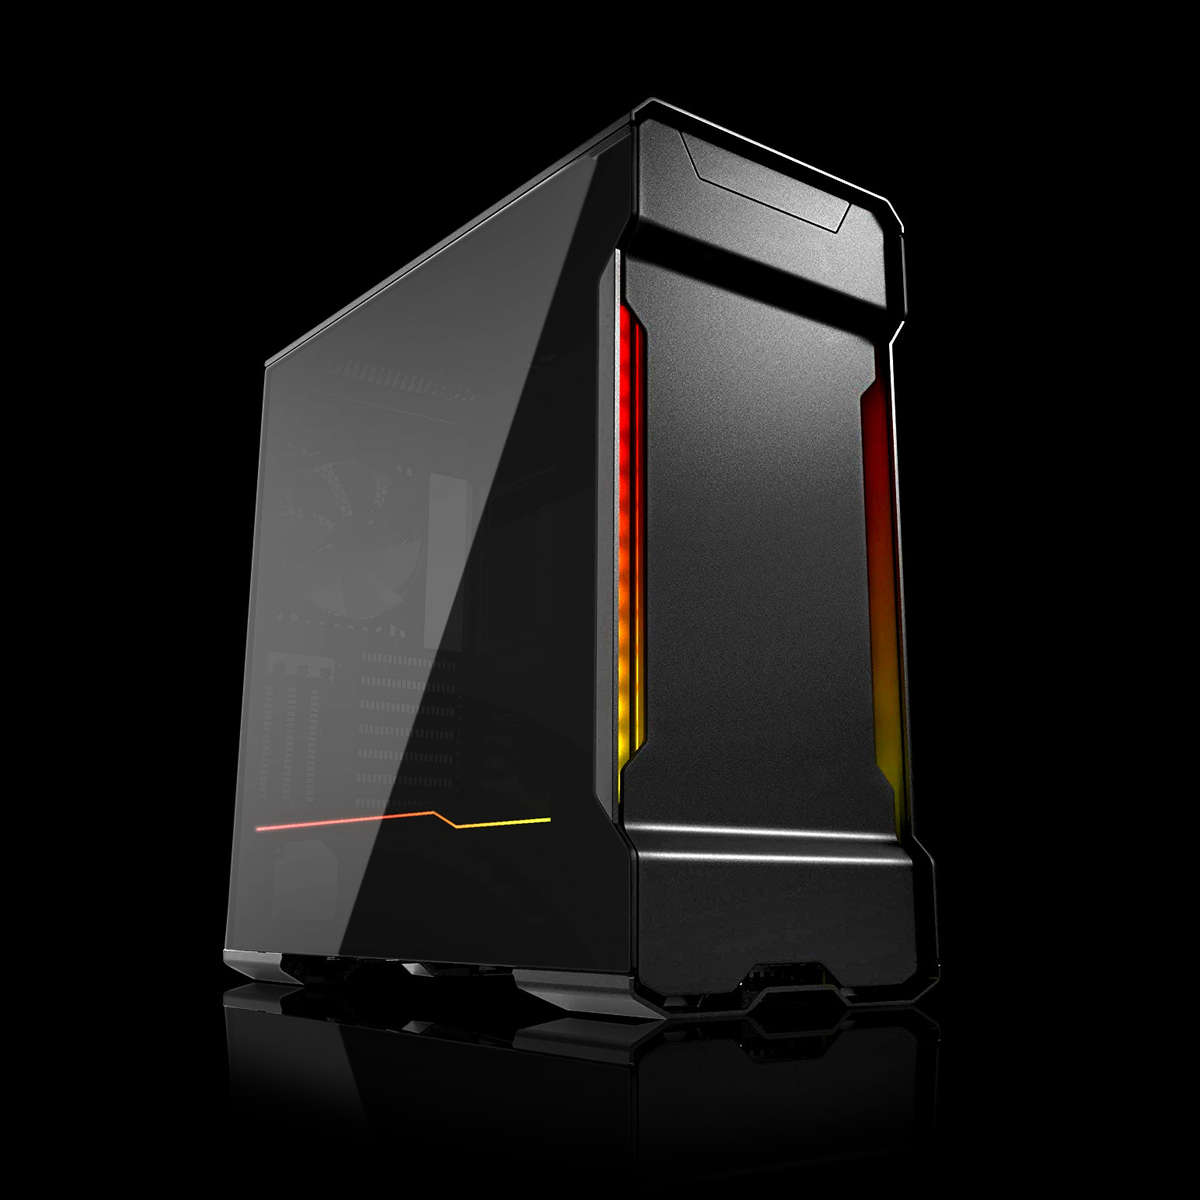 Chillblast Fusion Strix 3 RTX 2080 Super Gaming PC